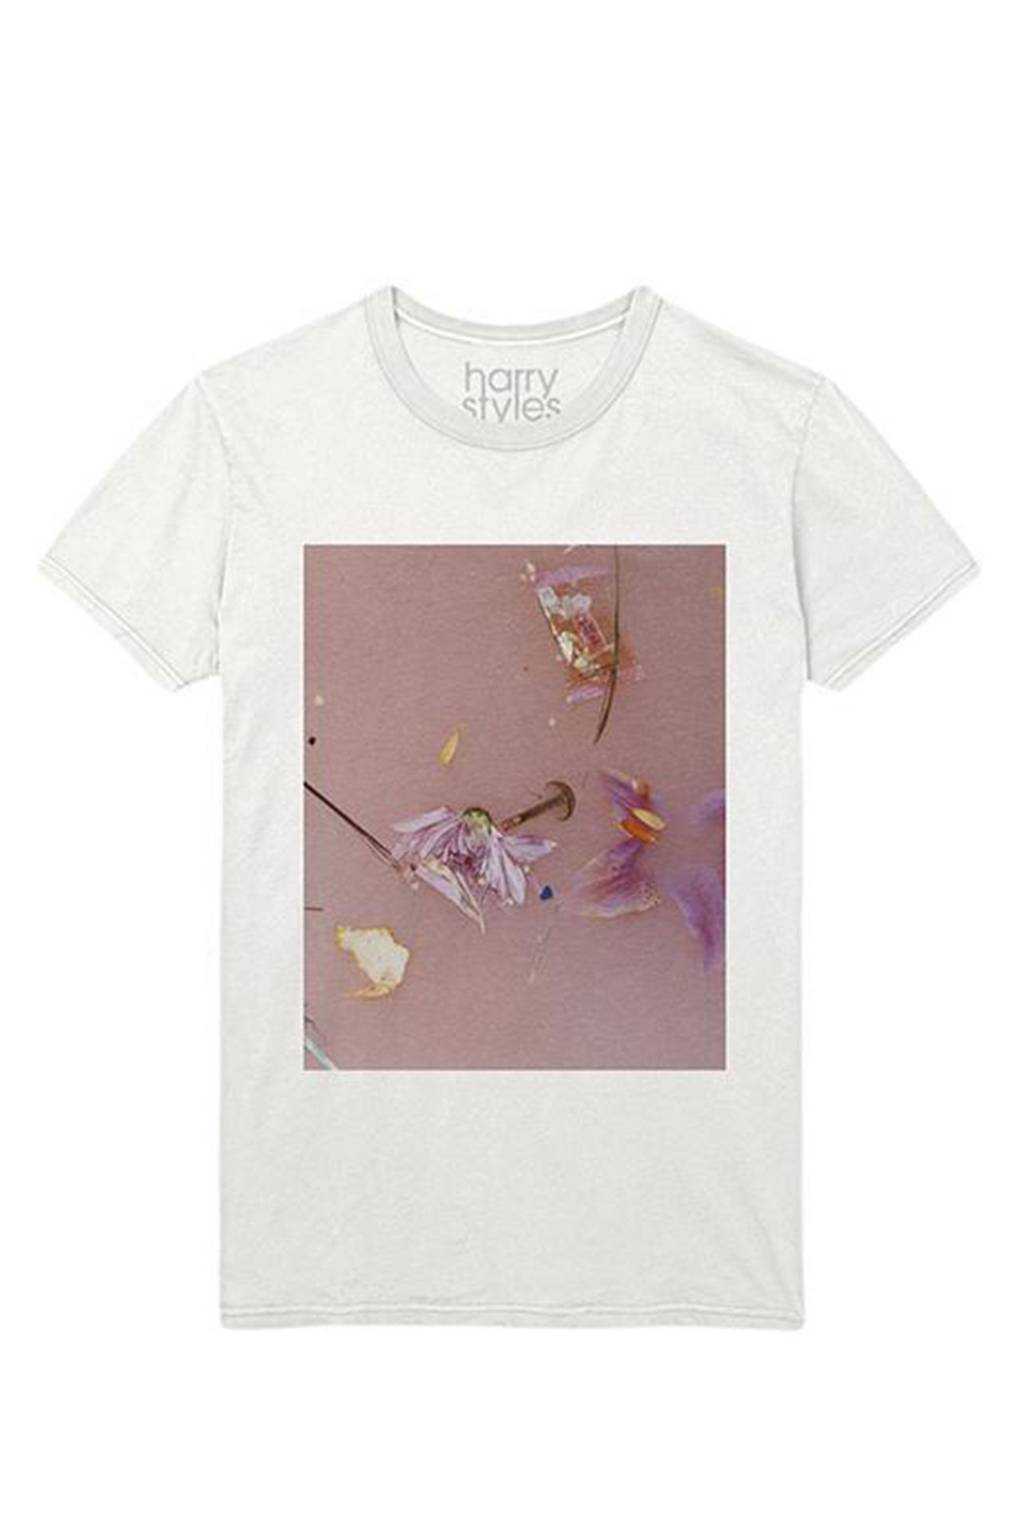 161475cde6 Every Piece Of Merchandise From Harry Styles Solo Tour